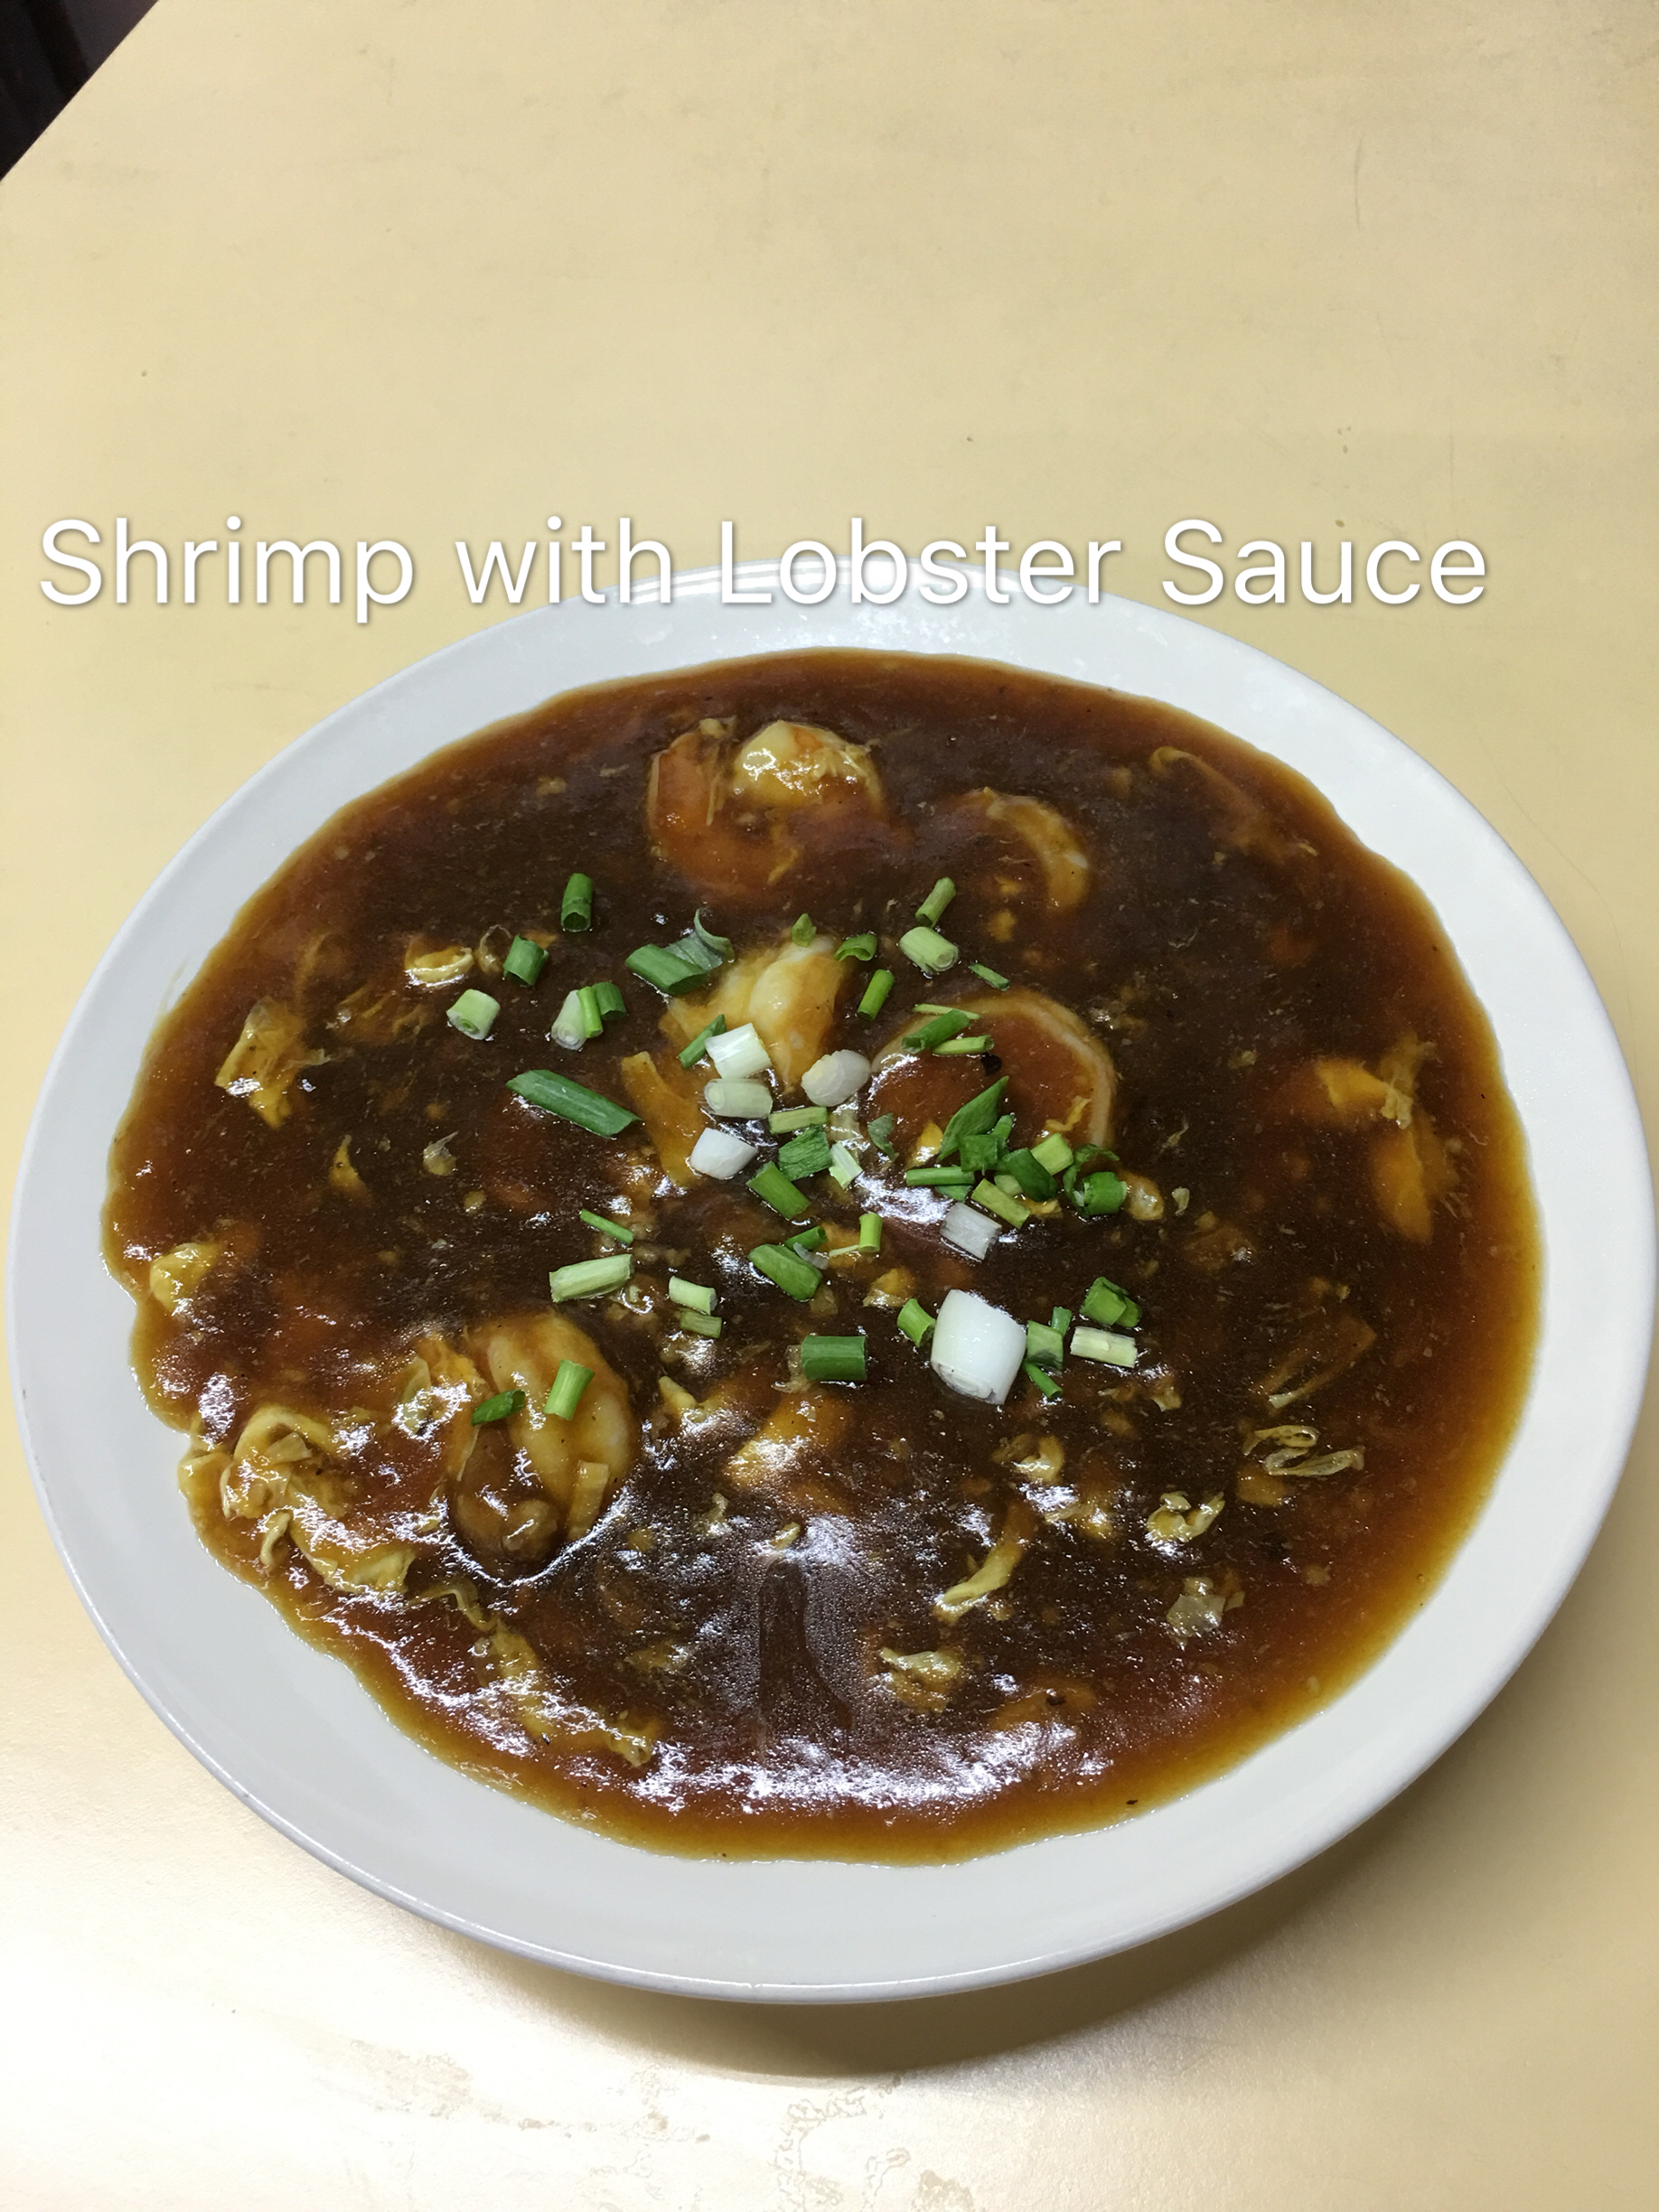 Shrimp with Lobster Sauce Image